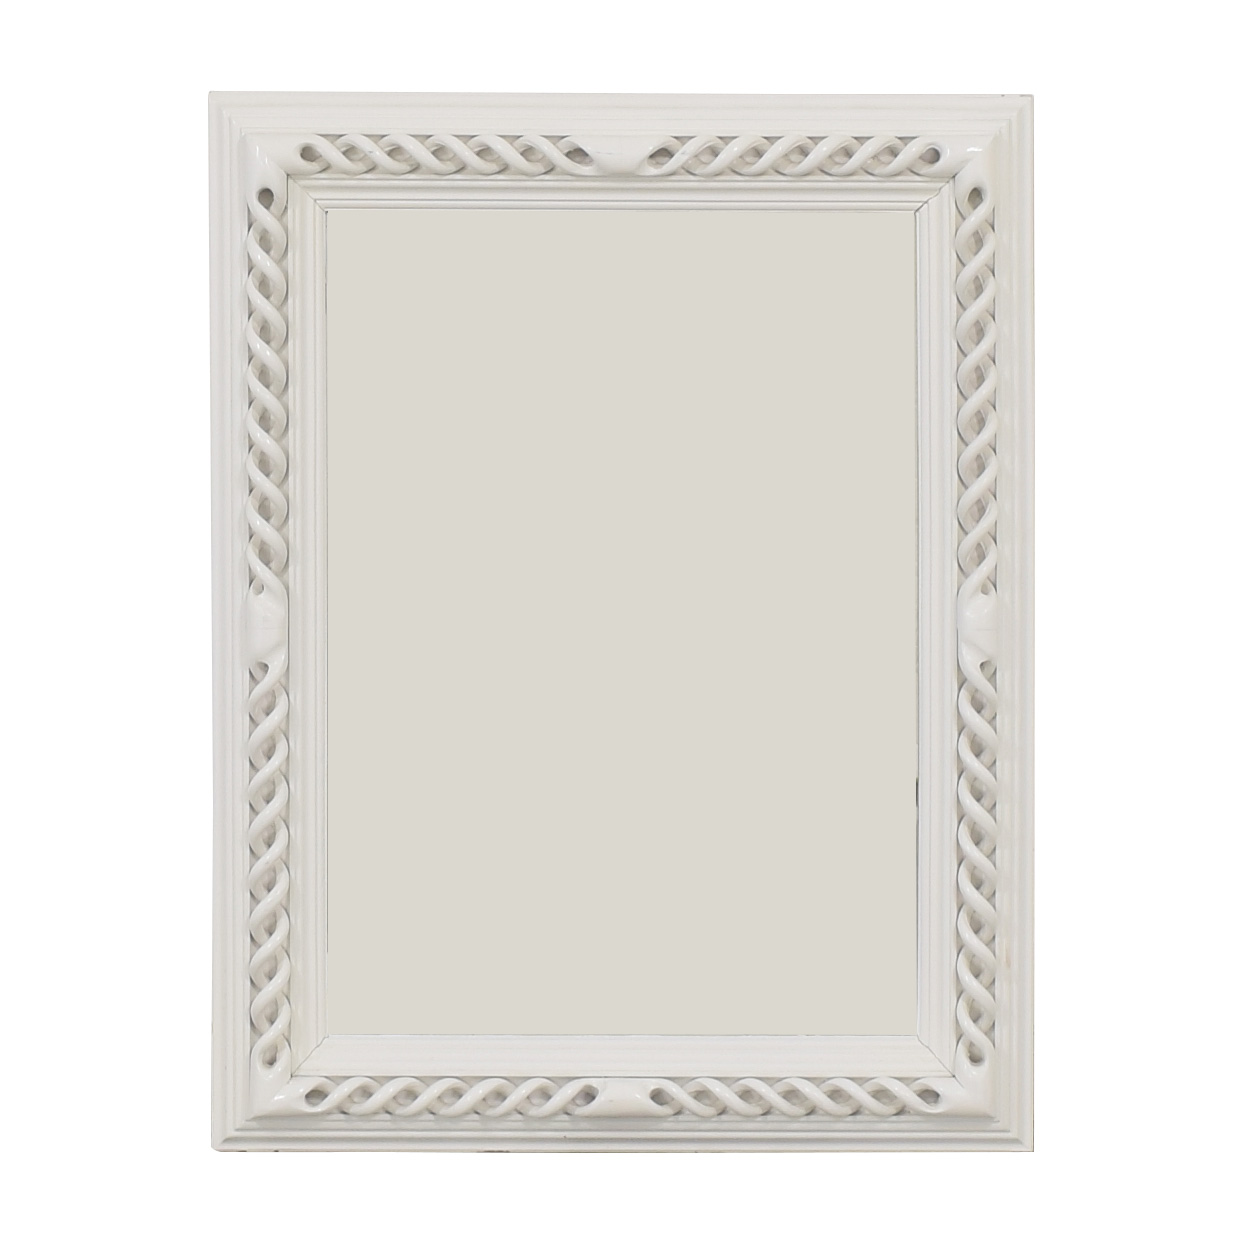 buy Anthropologie Framed Mirror Anthropologie Mirrors